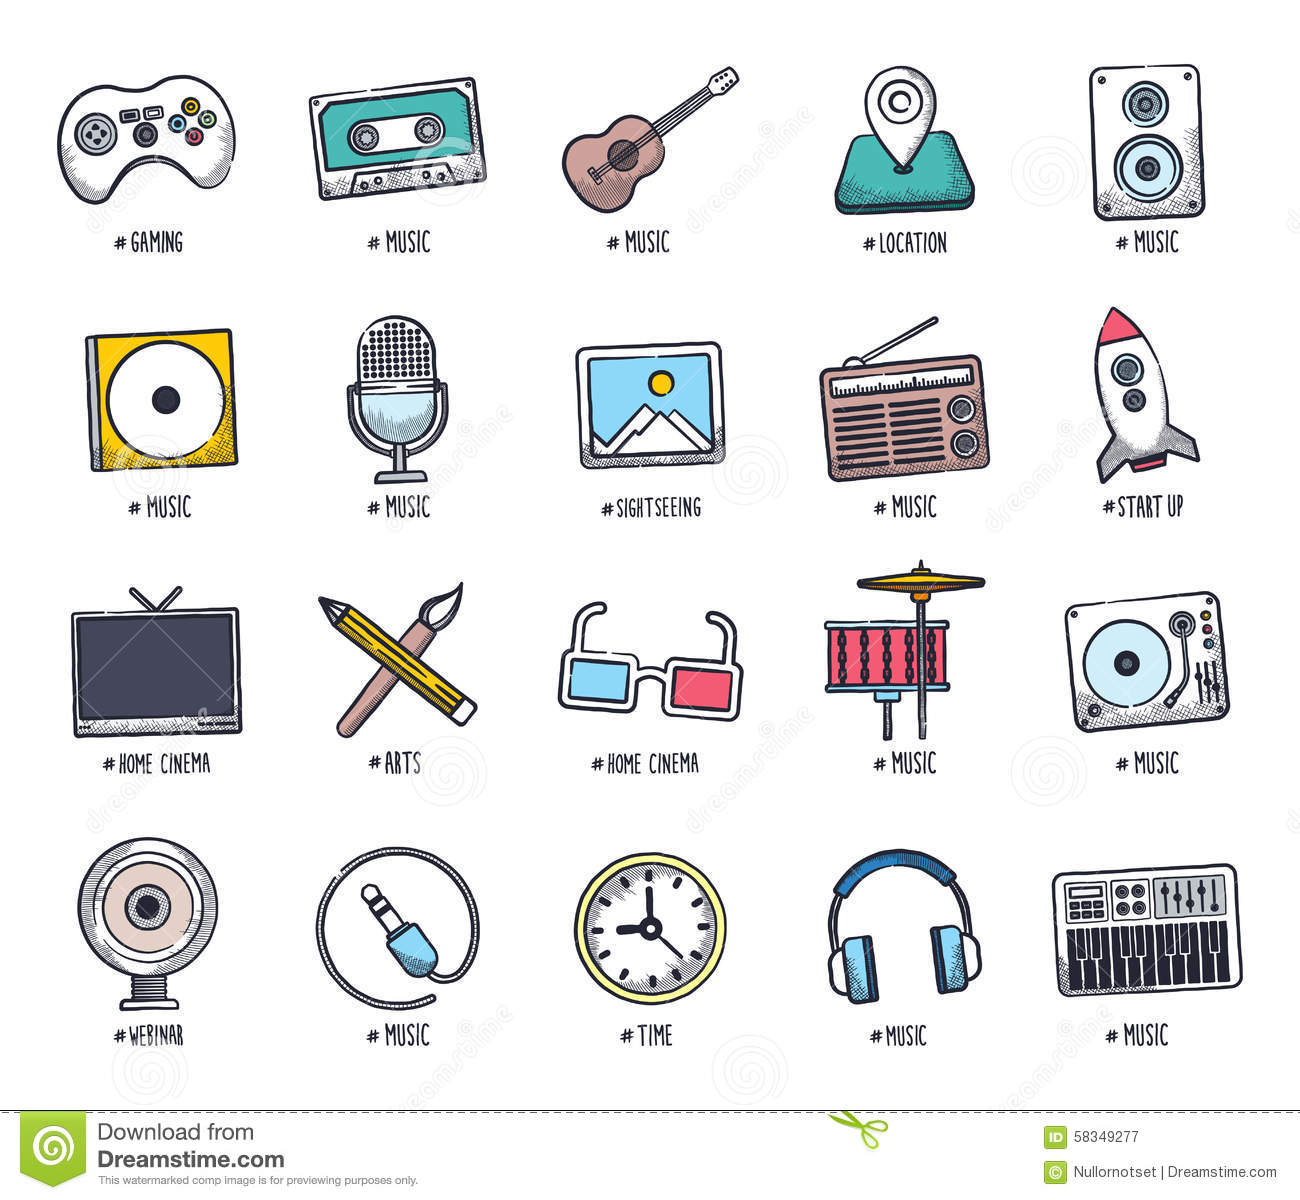 Drawing human ear royalty free stock photography image 25570937 - Multimedia Doodle Icon Set Royalty Free Stock Photography